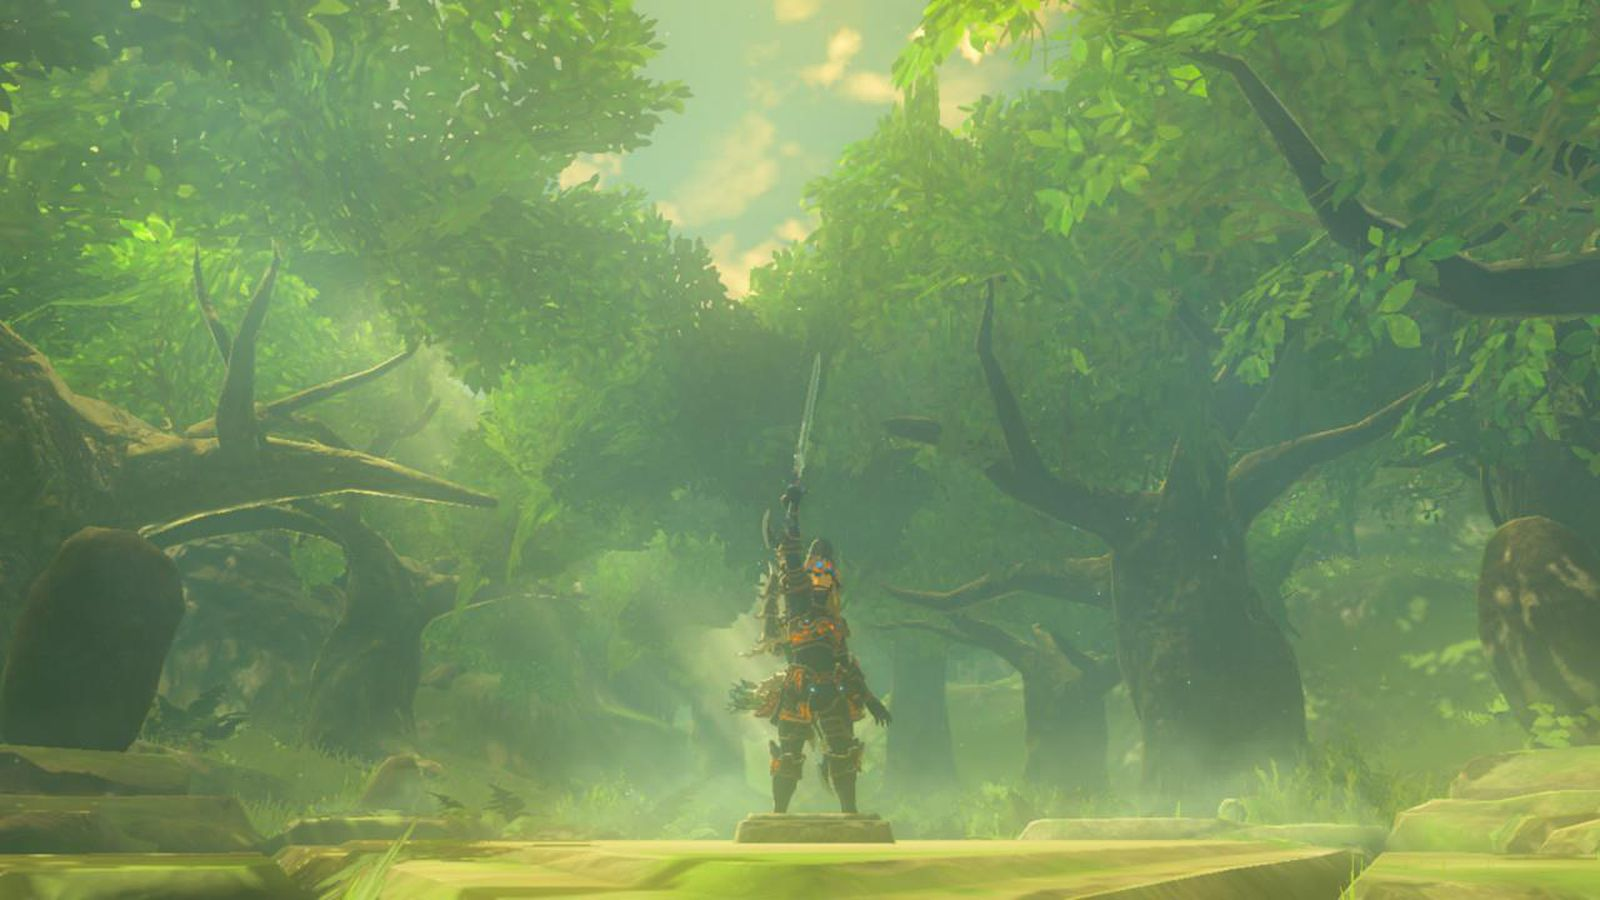 zelda breath of the wild on pc guide